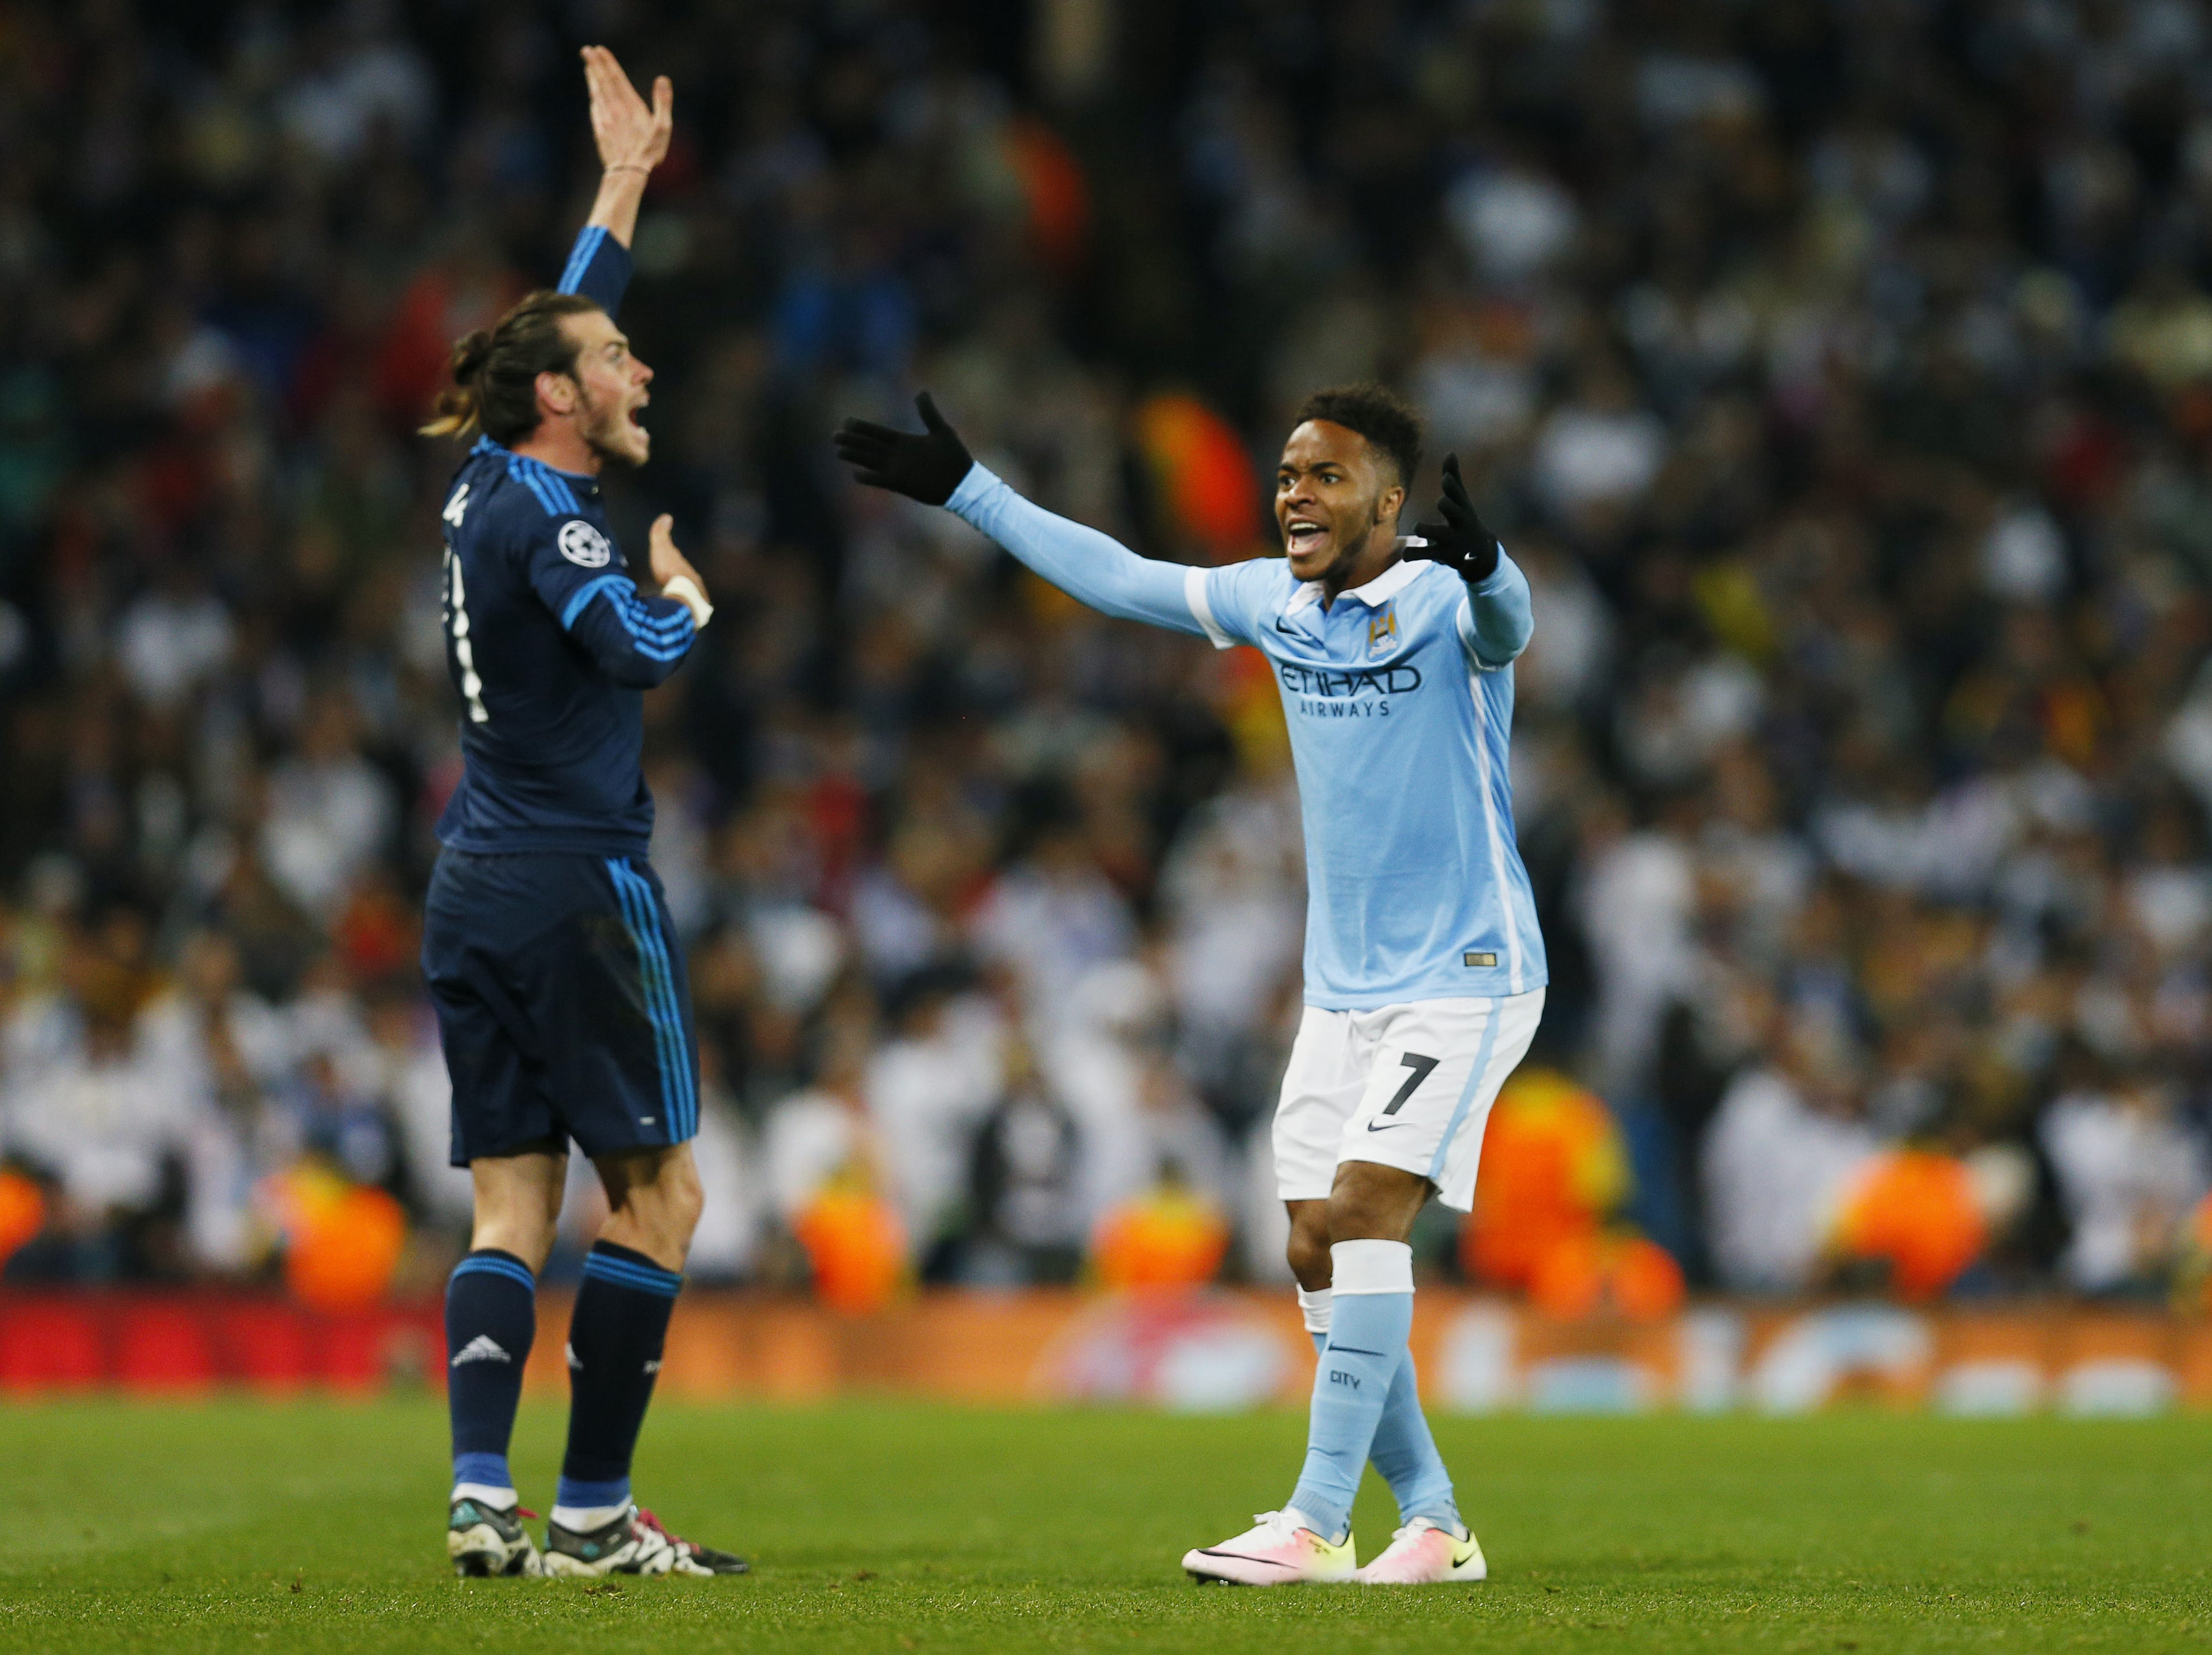 Zinedine Zidane dismisses talk of Bale-Sterling swap deal with Manchester City